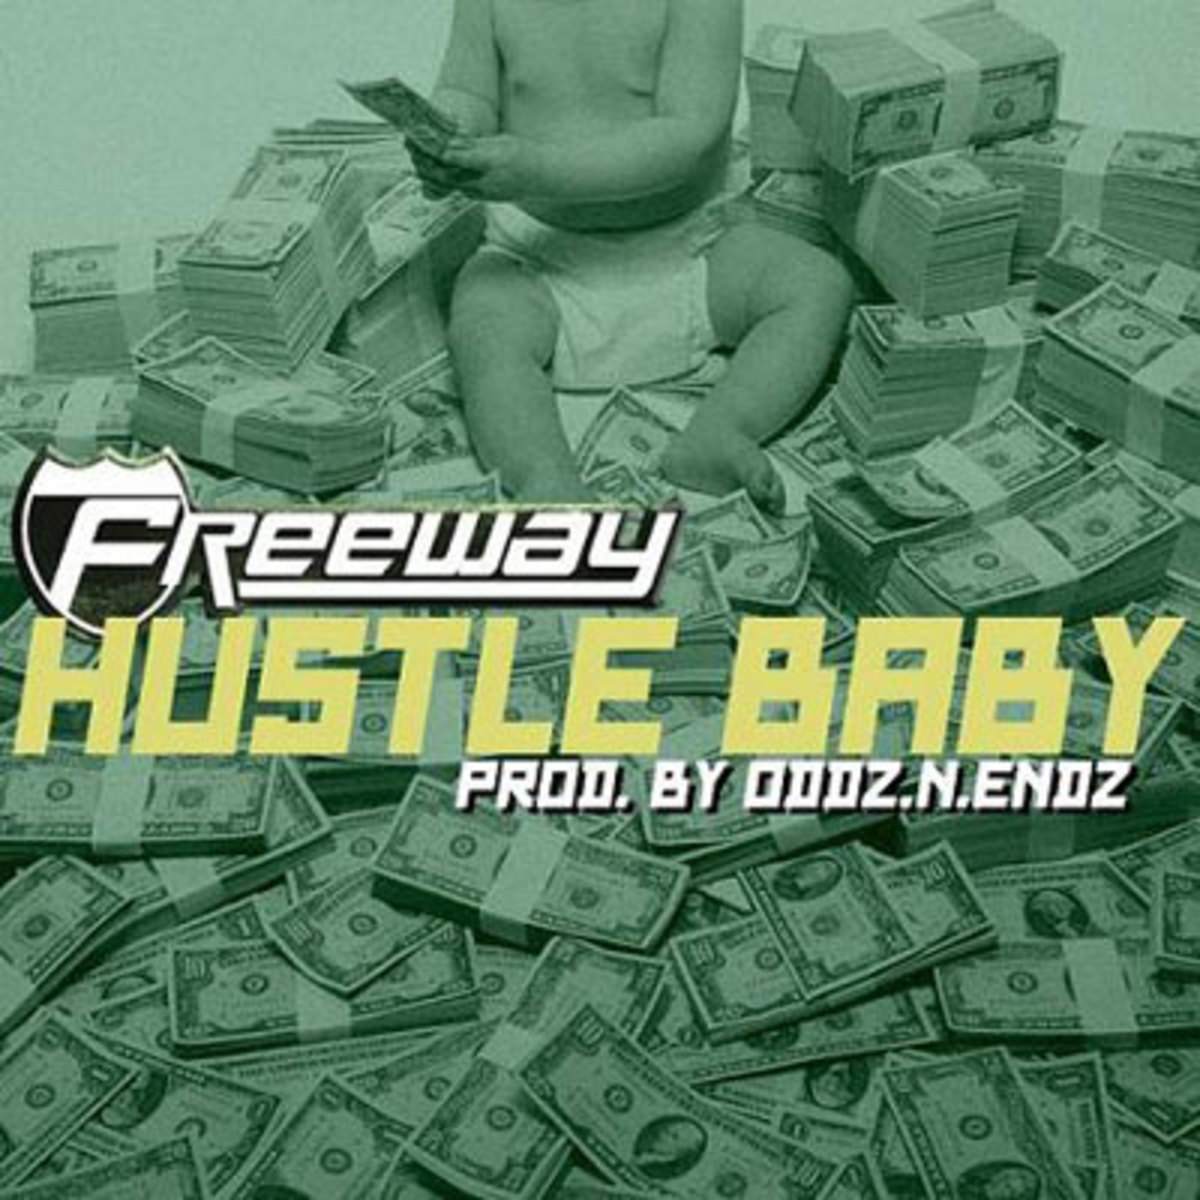 freeway-hustlebaby.jpg